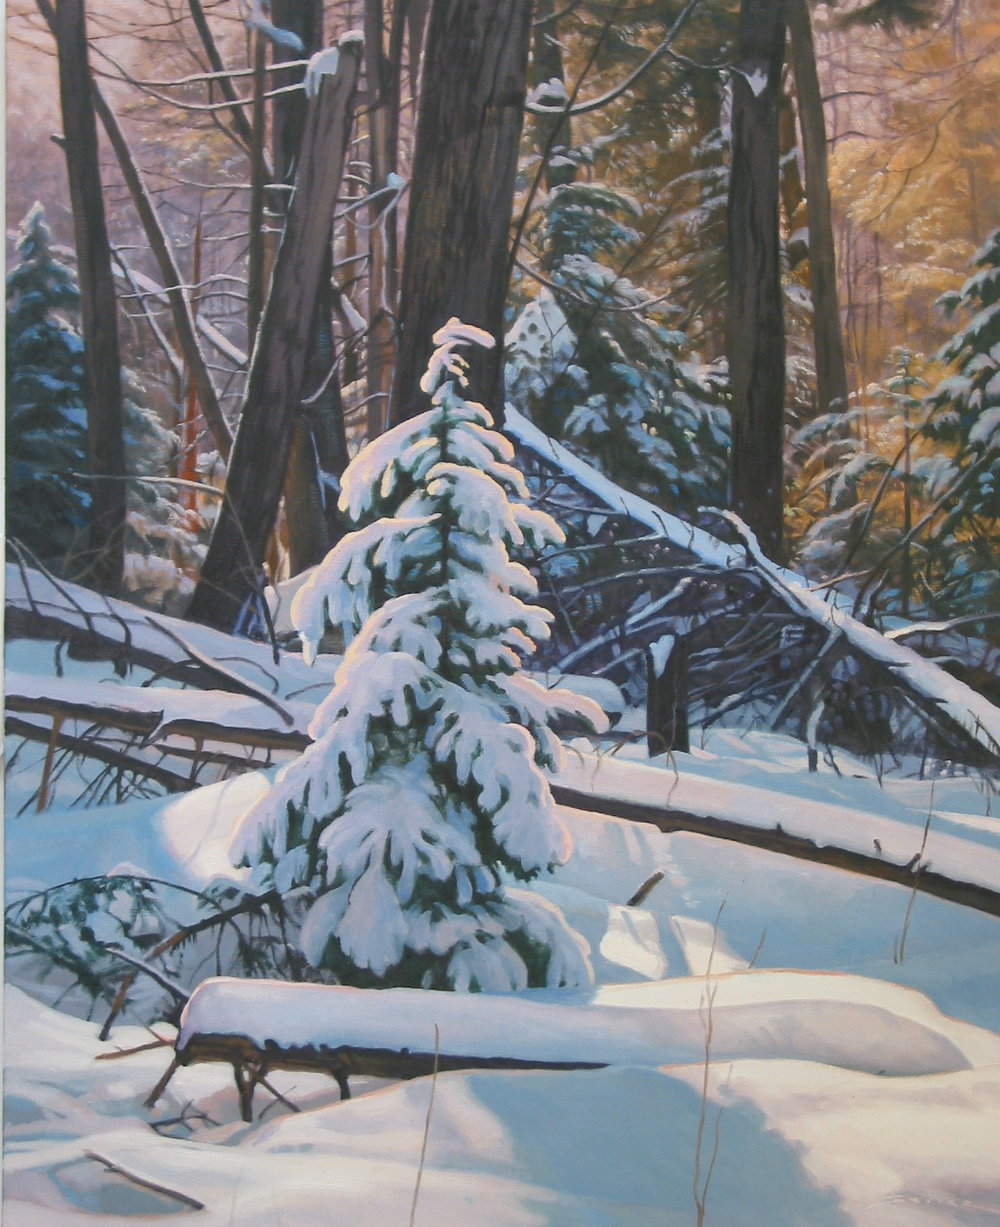 Winter's Light, 30 x 24, oil